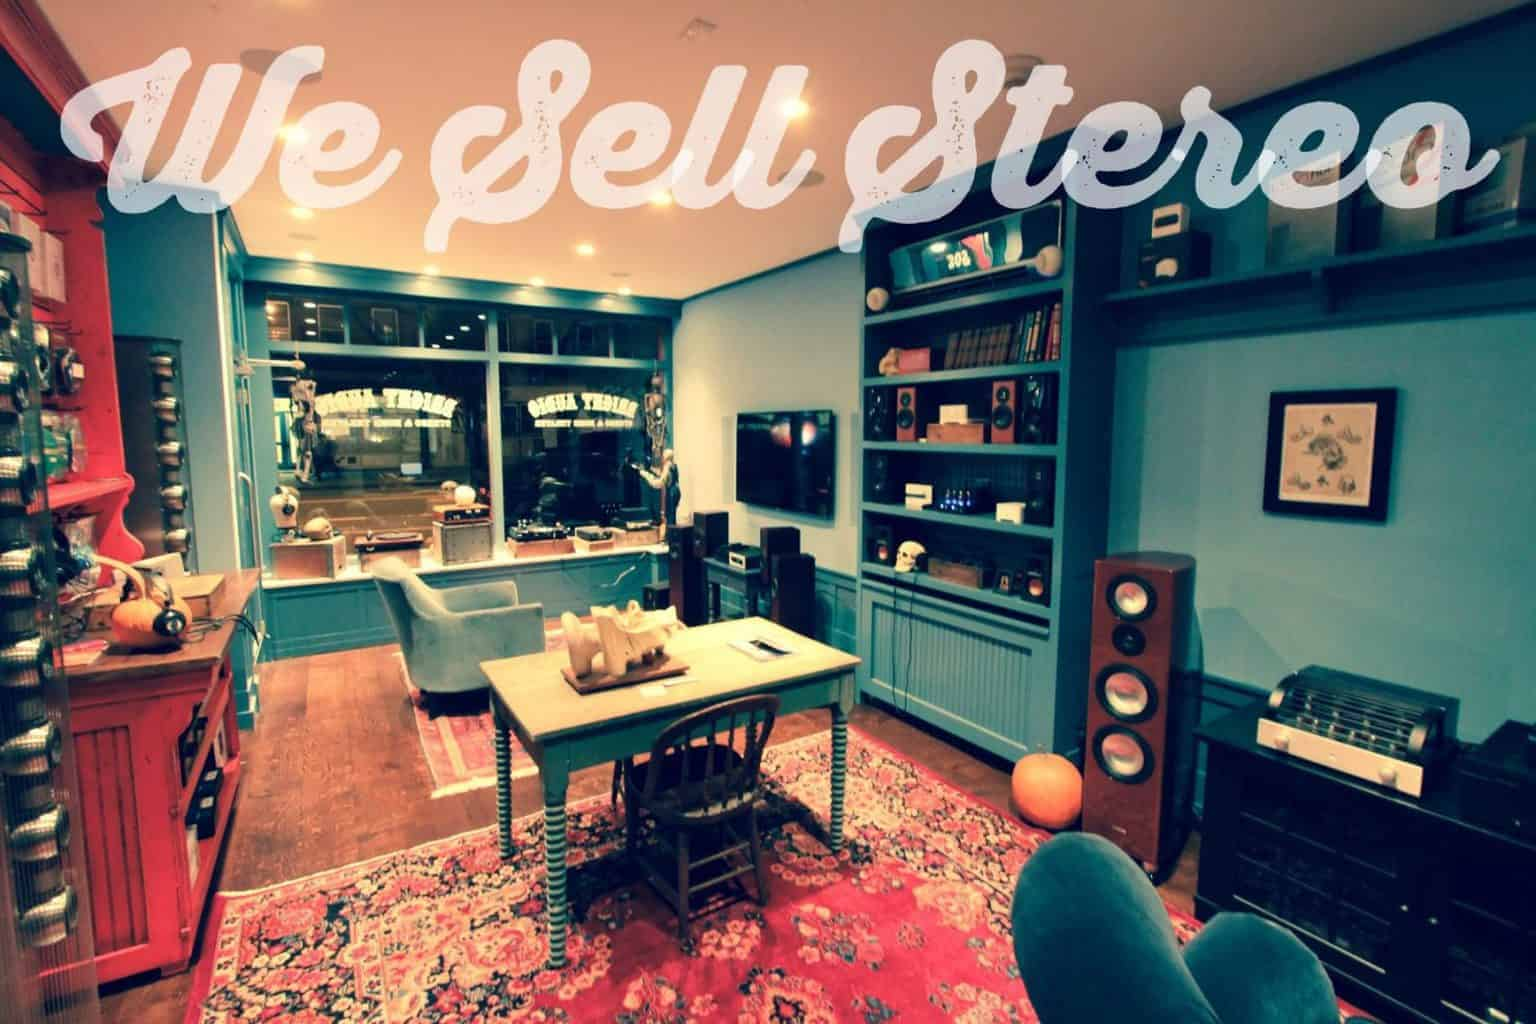 We Sell Stereo